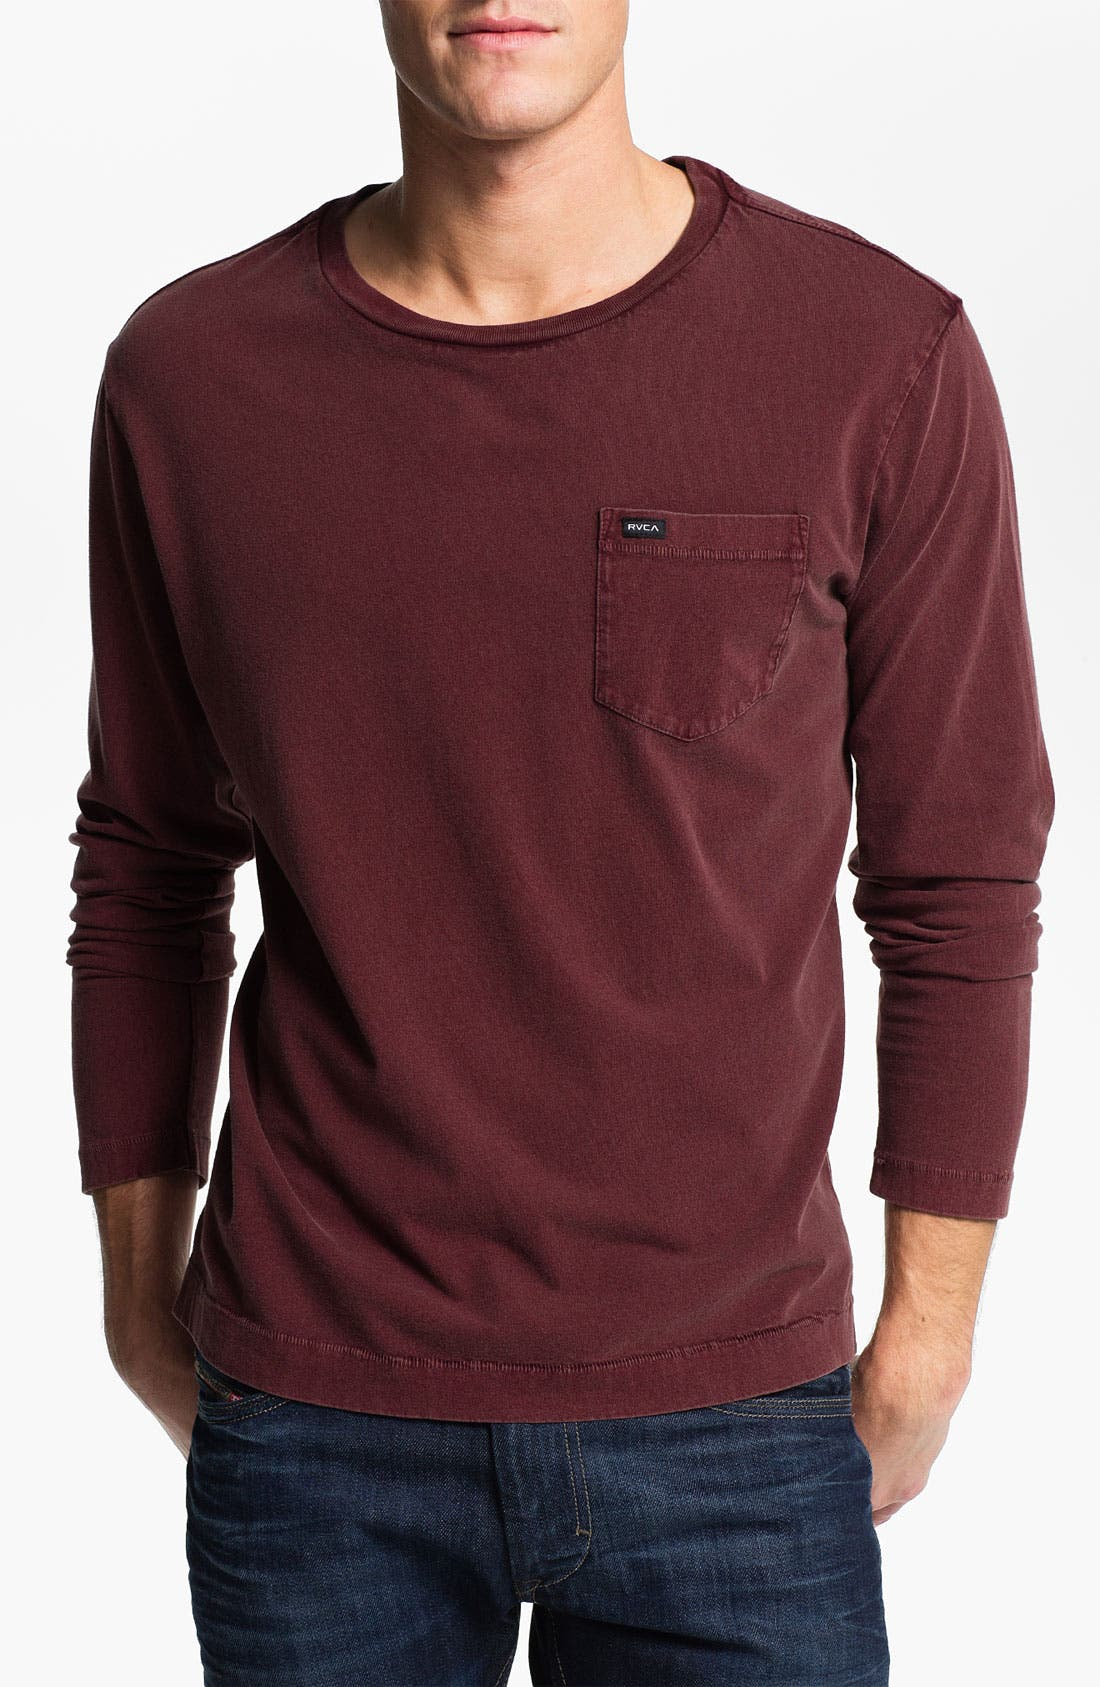 Main Image - RVCA 'Solstice' Pigment Dyed Long Sleeve T-Shirt